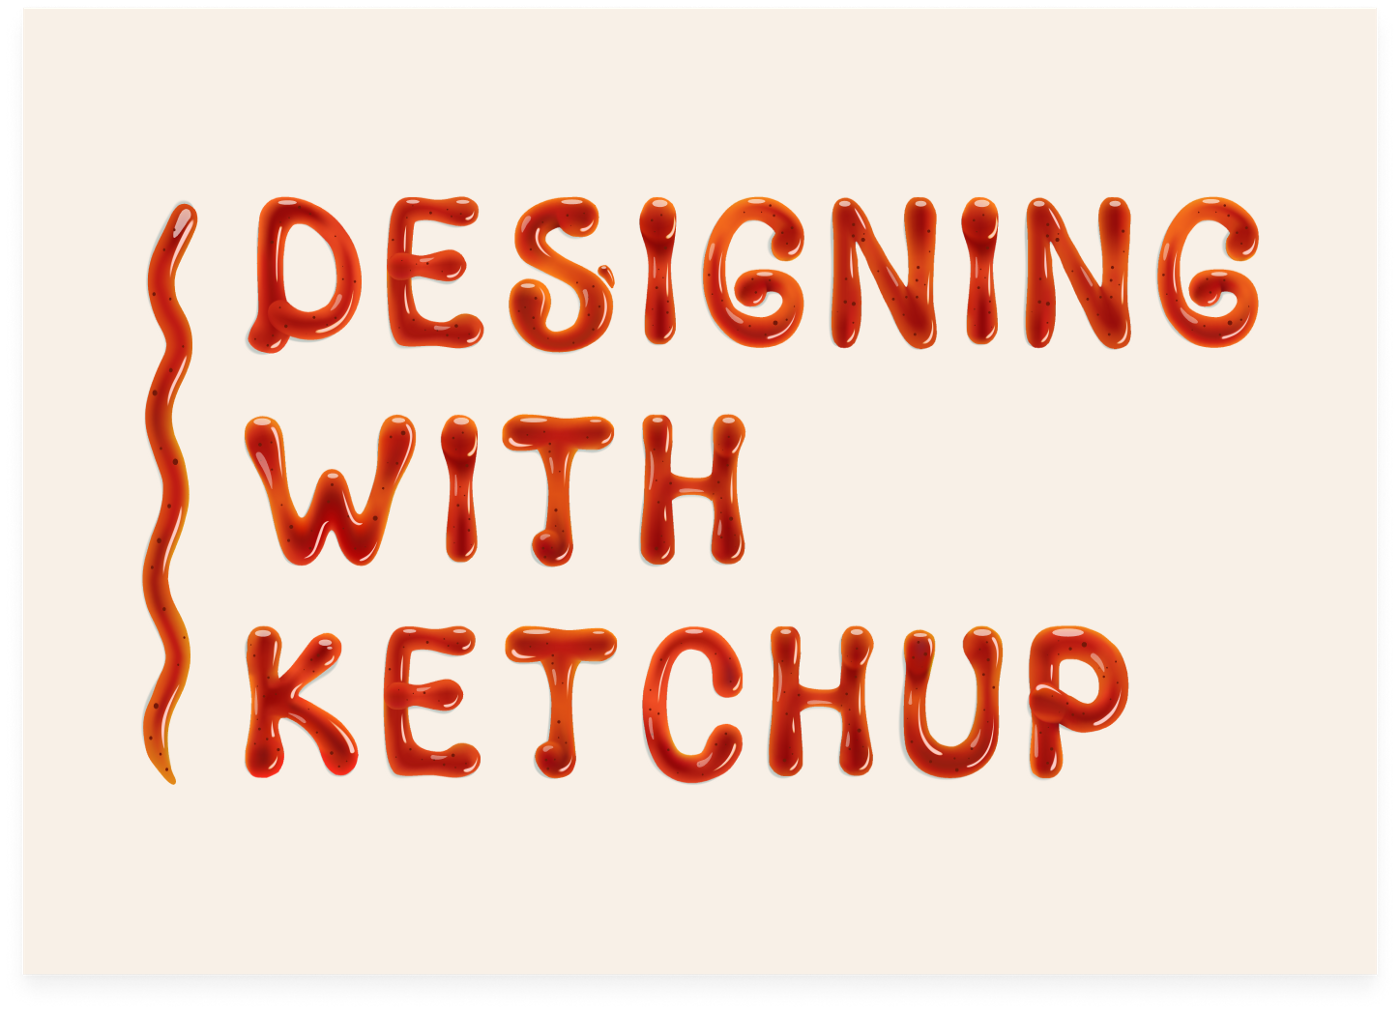 'Designing with ketchup' written in ketchup